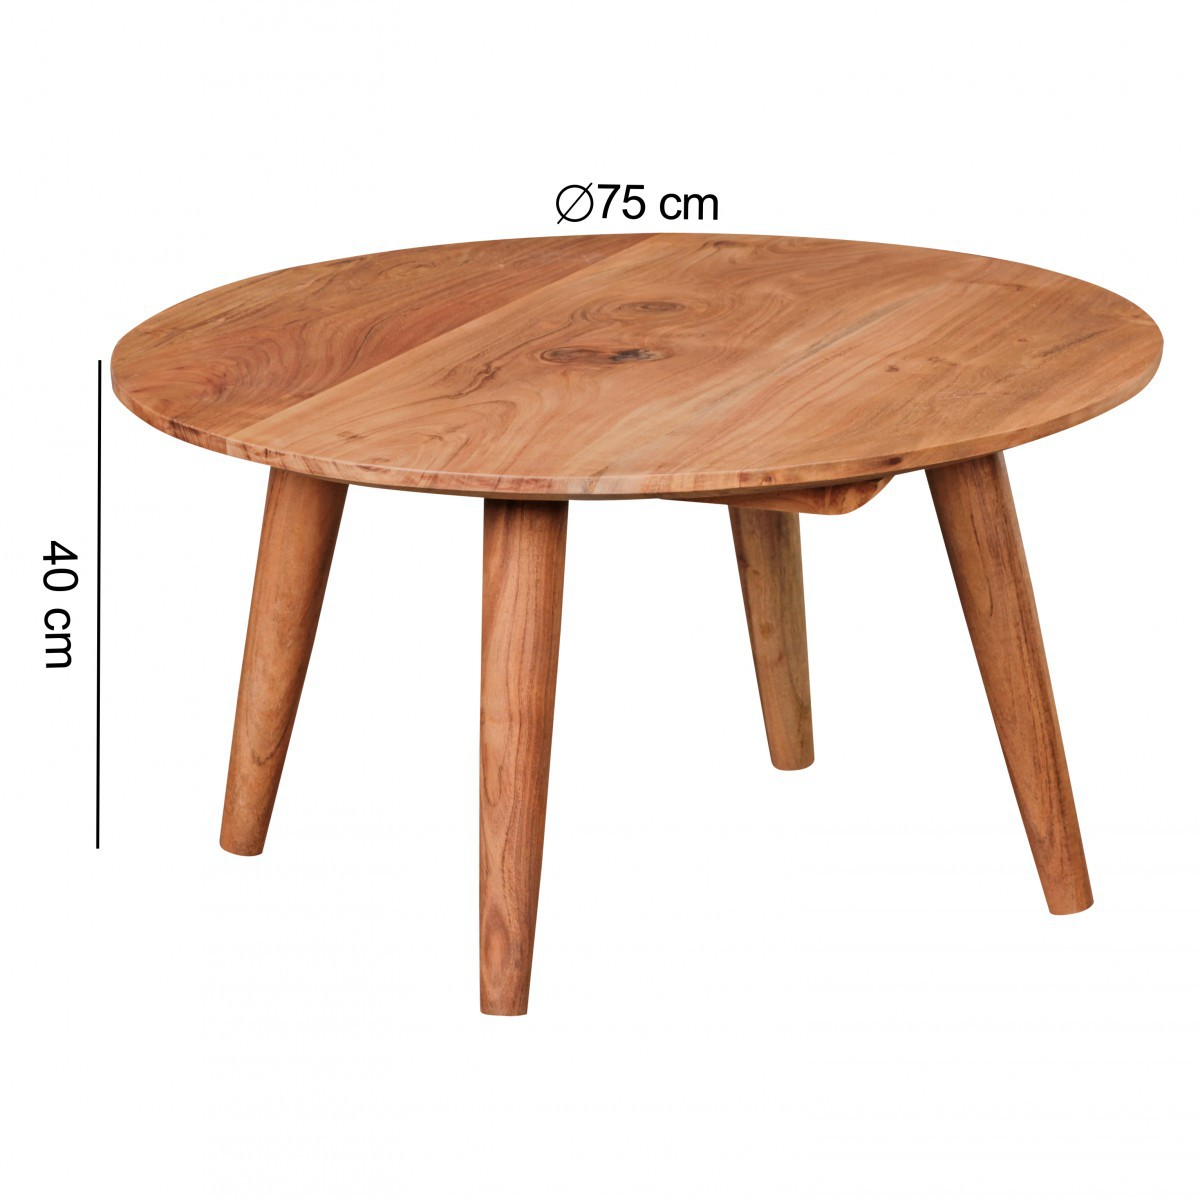 Finebuy table basse en bois massif acacia table basse - Table basse ronde chene ...